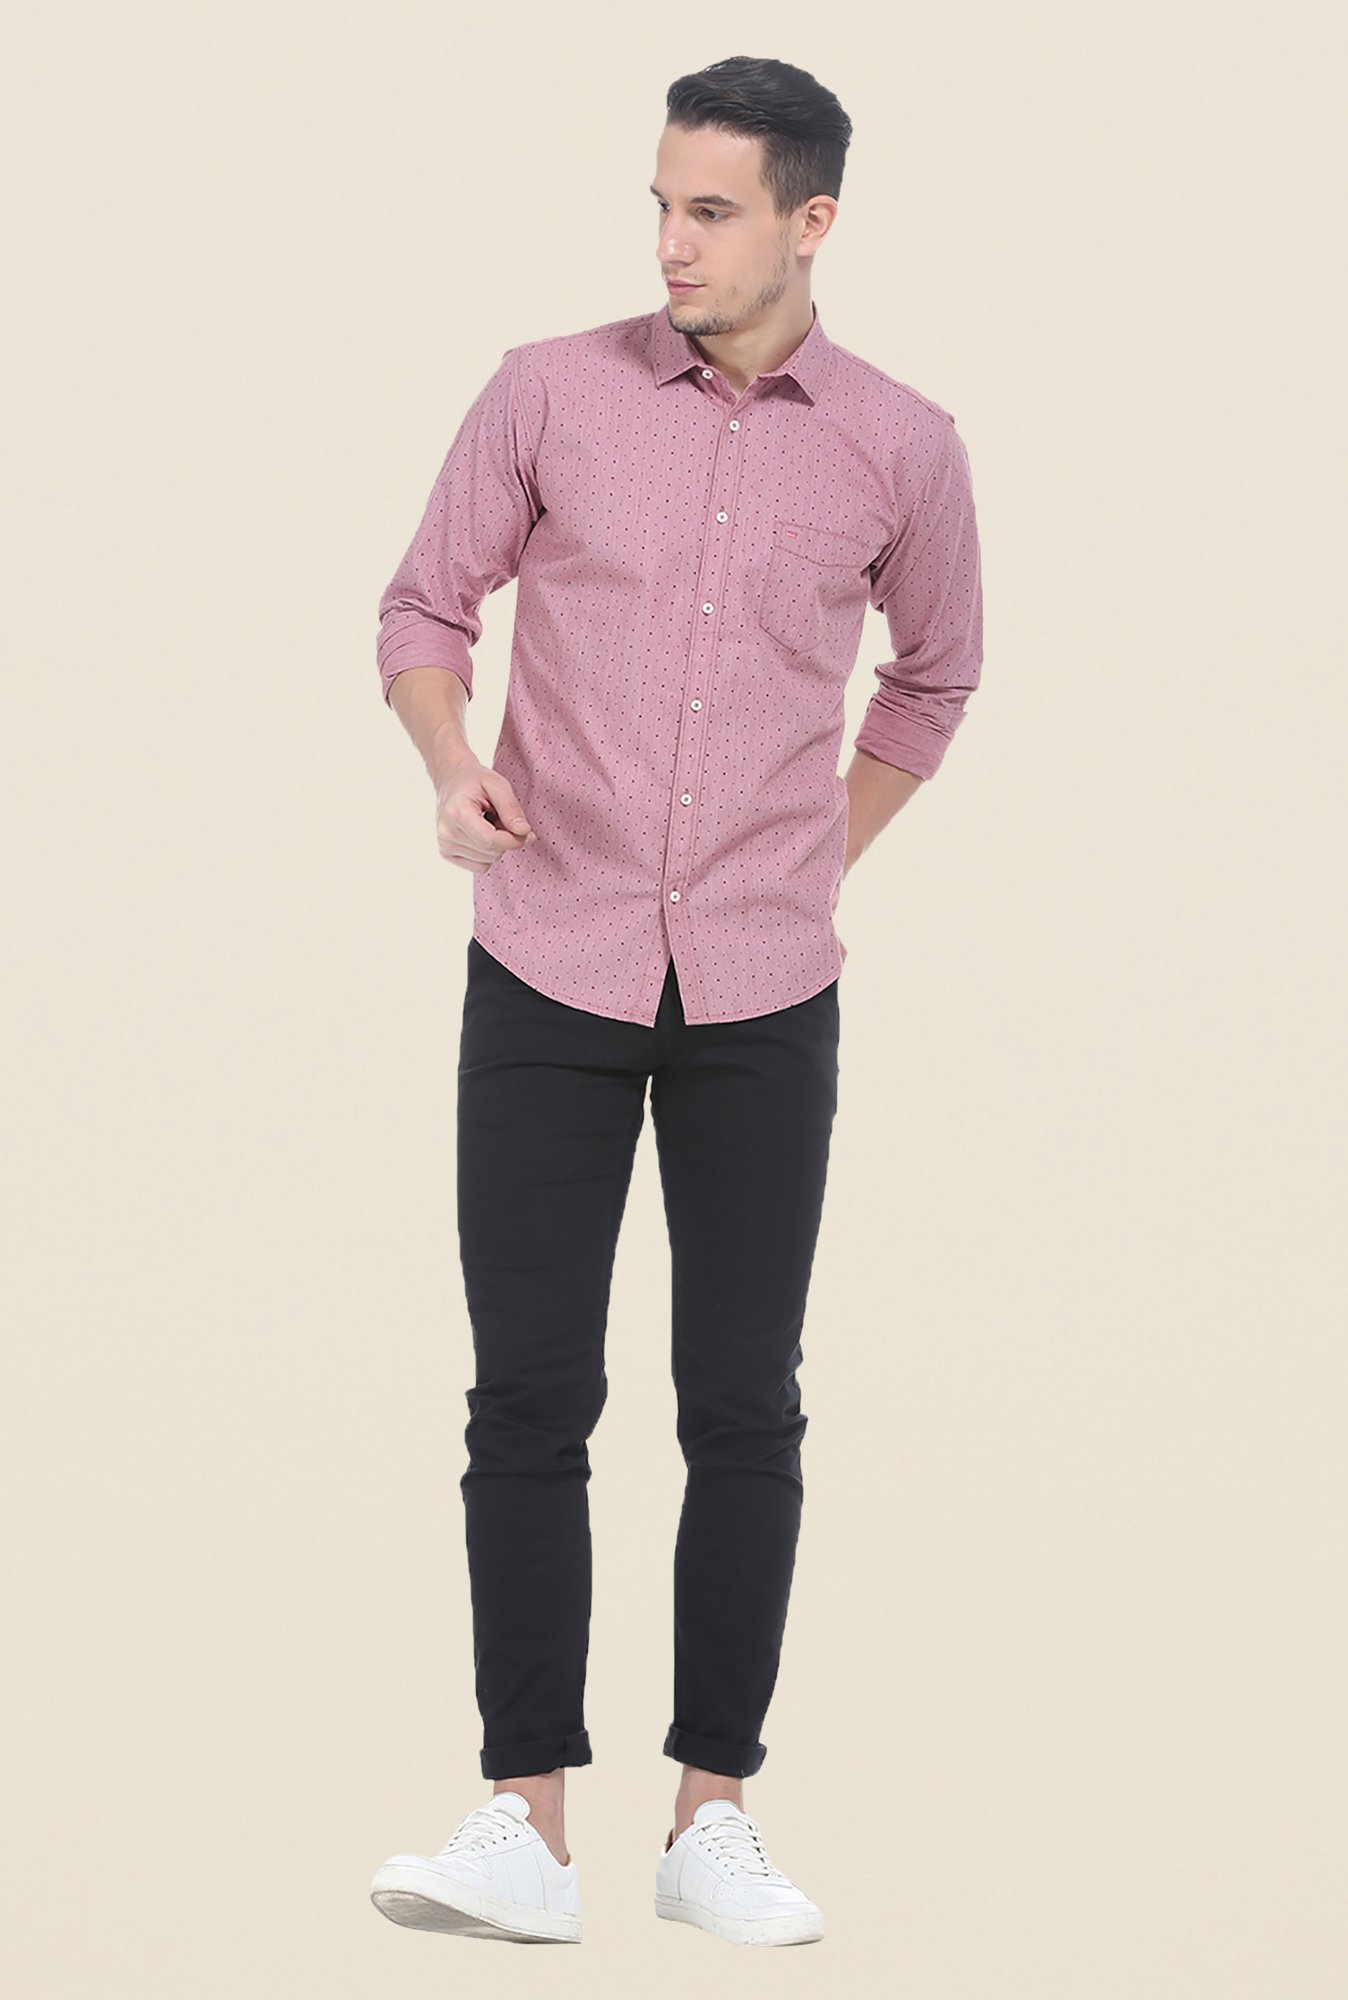 Basics Pink Polka Dot Shirt